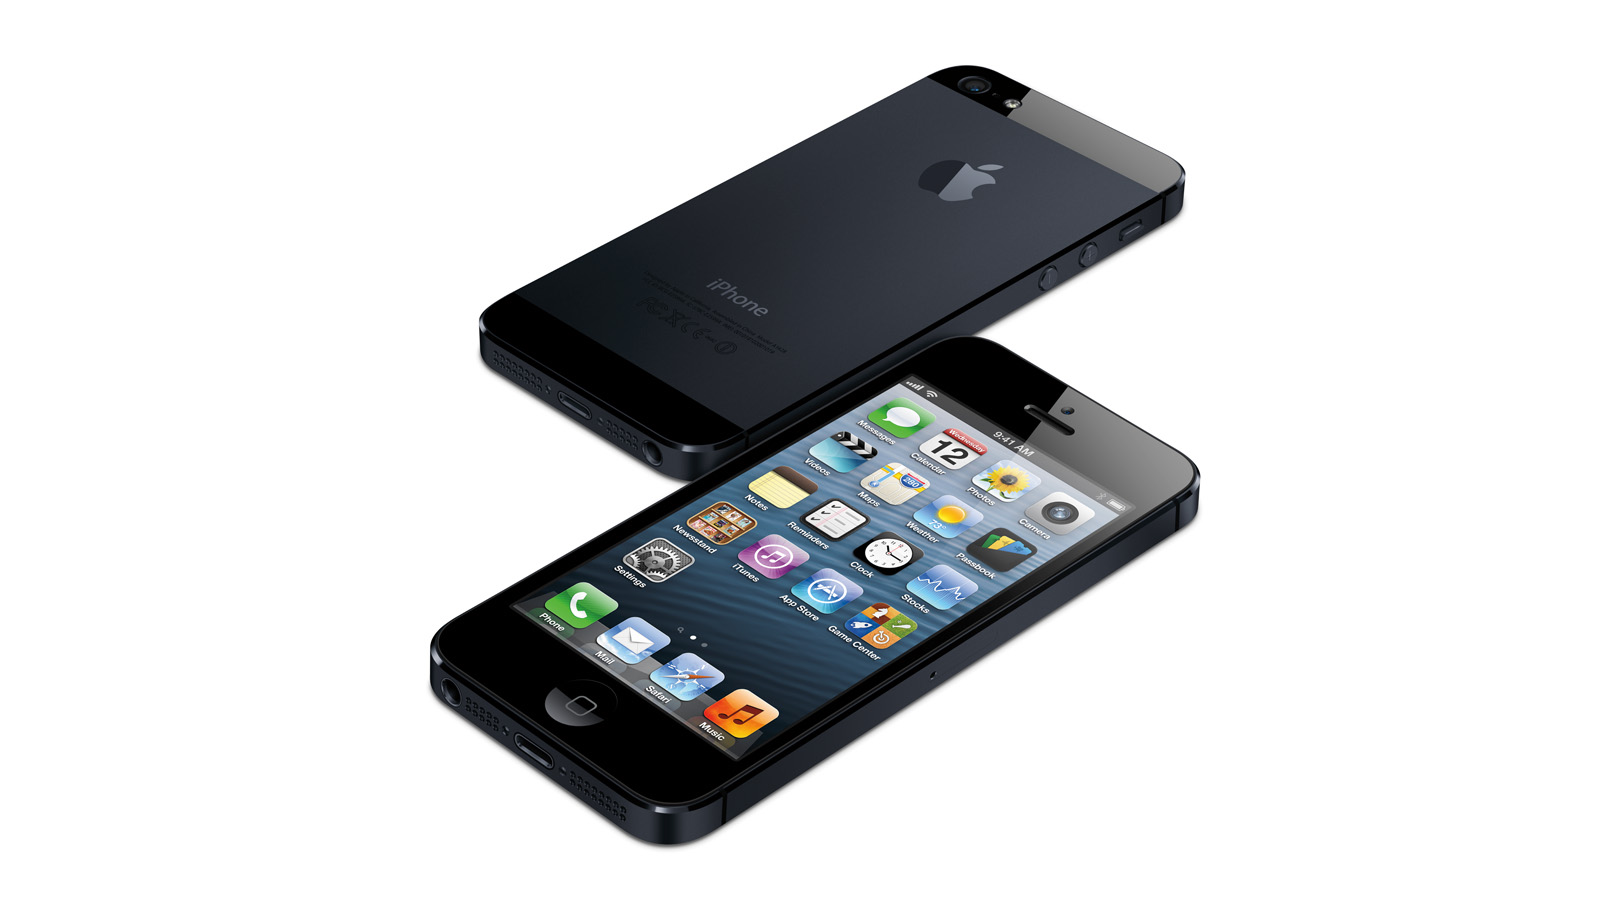 Click here to read The iPhone 5 Really Costs You $1800